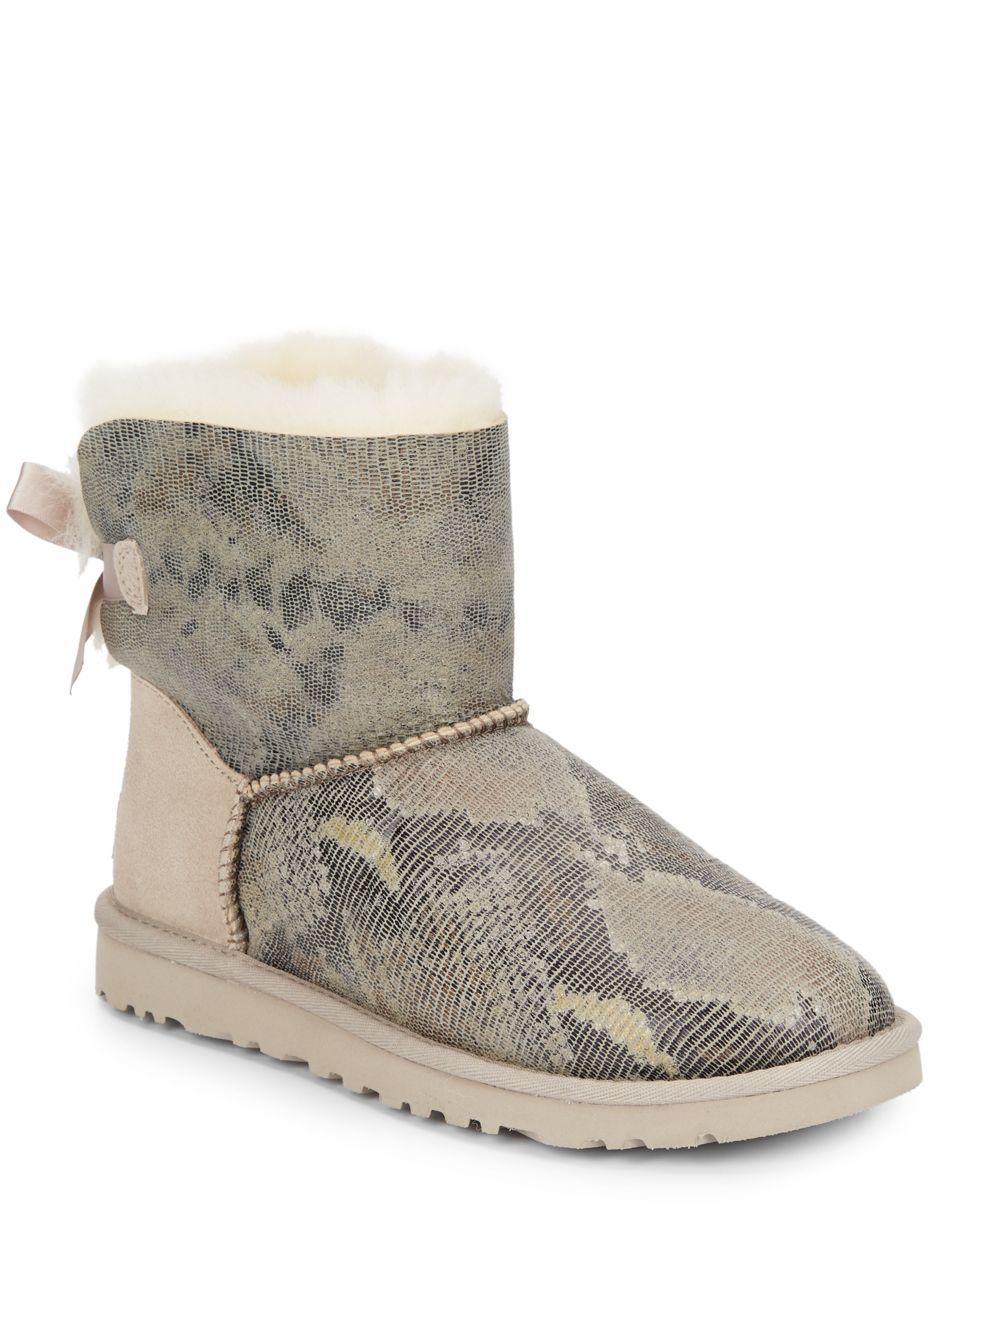 ugg womens classic mini snake boots metallic